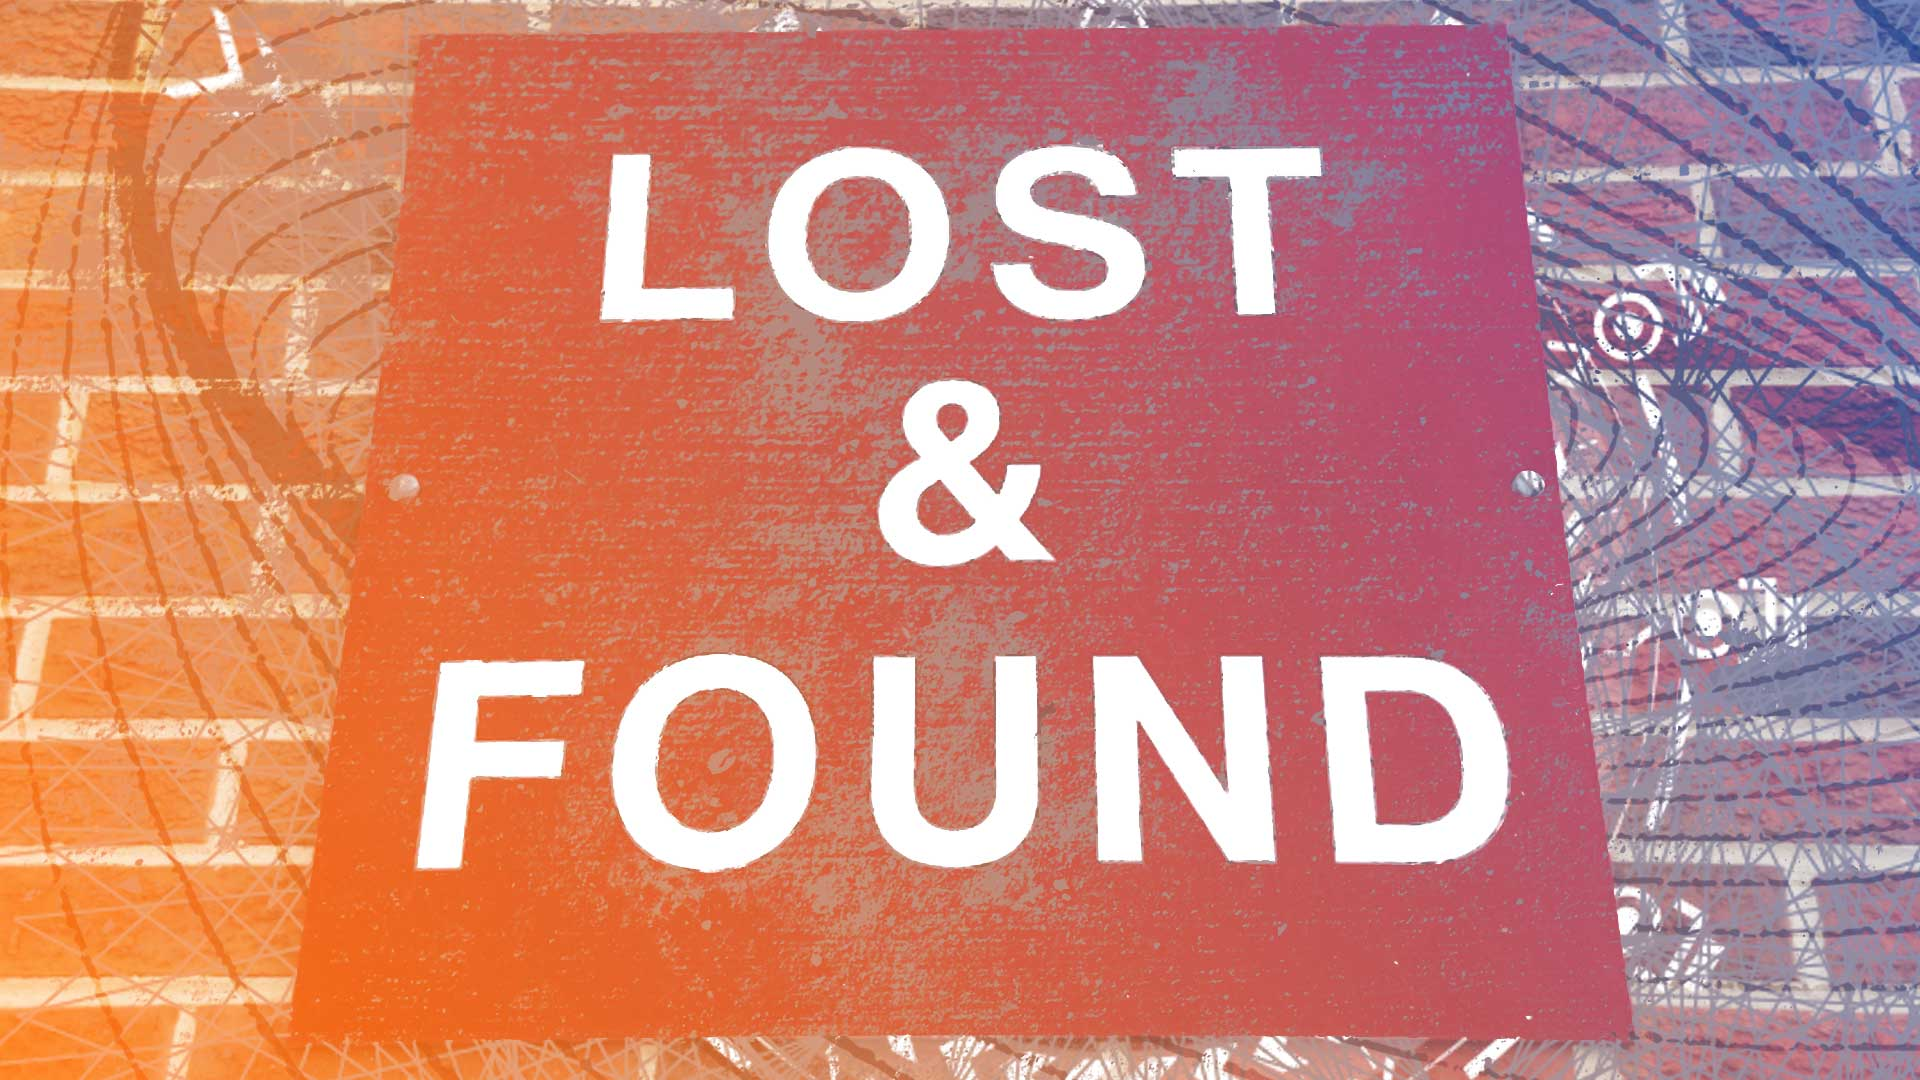 it and the lost found box zbx technology